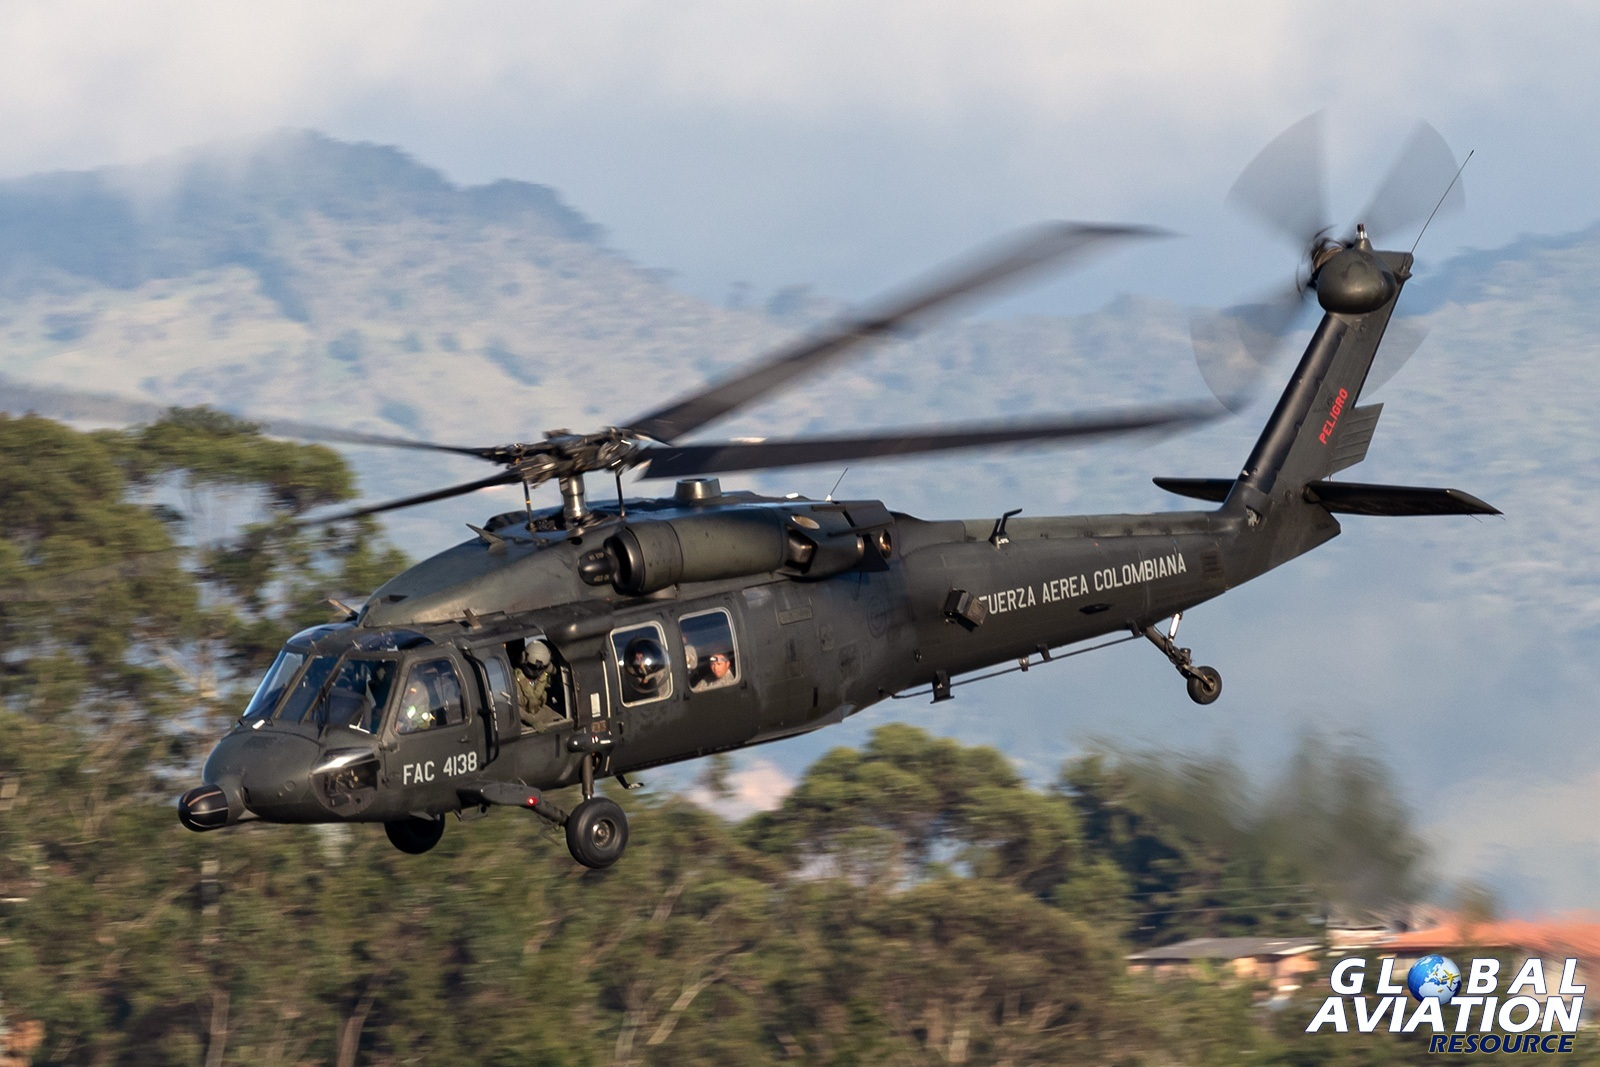 Colombian Air Force MH-60L - © Paul Filmer, Global Aviation Resource